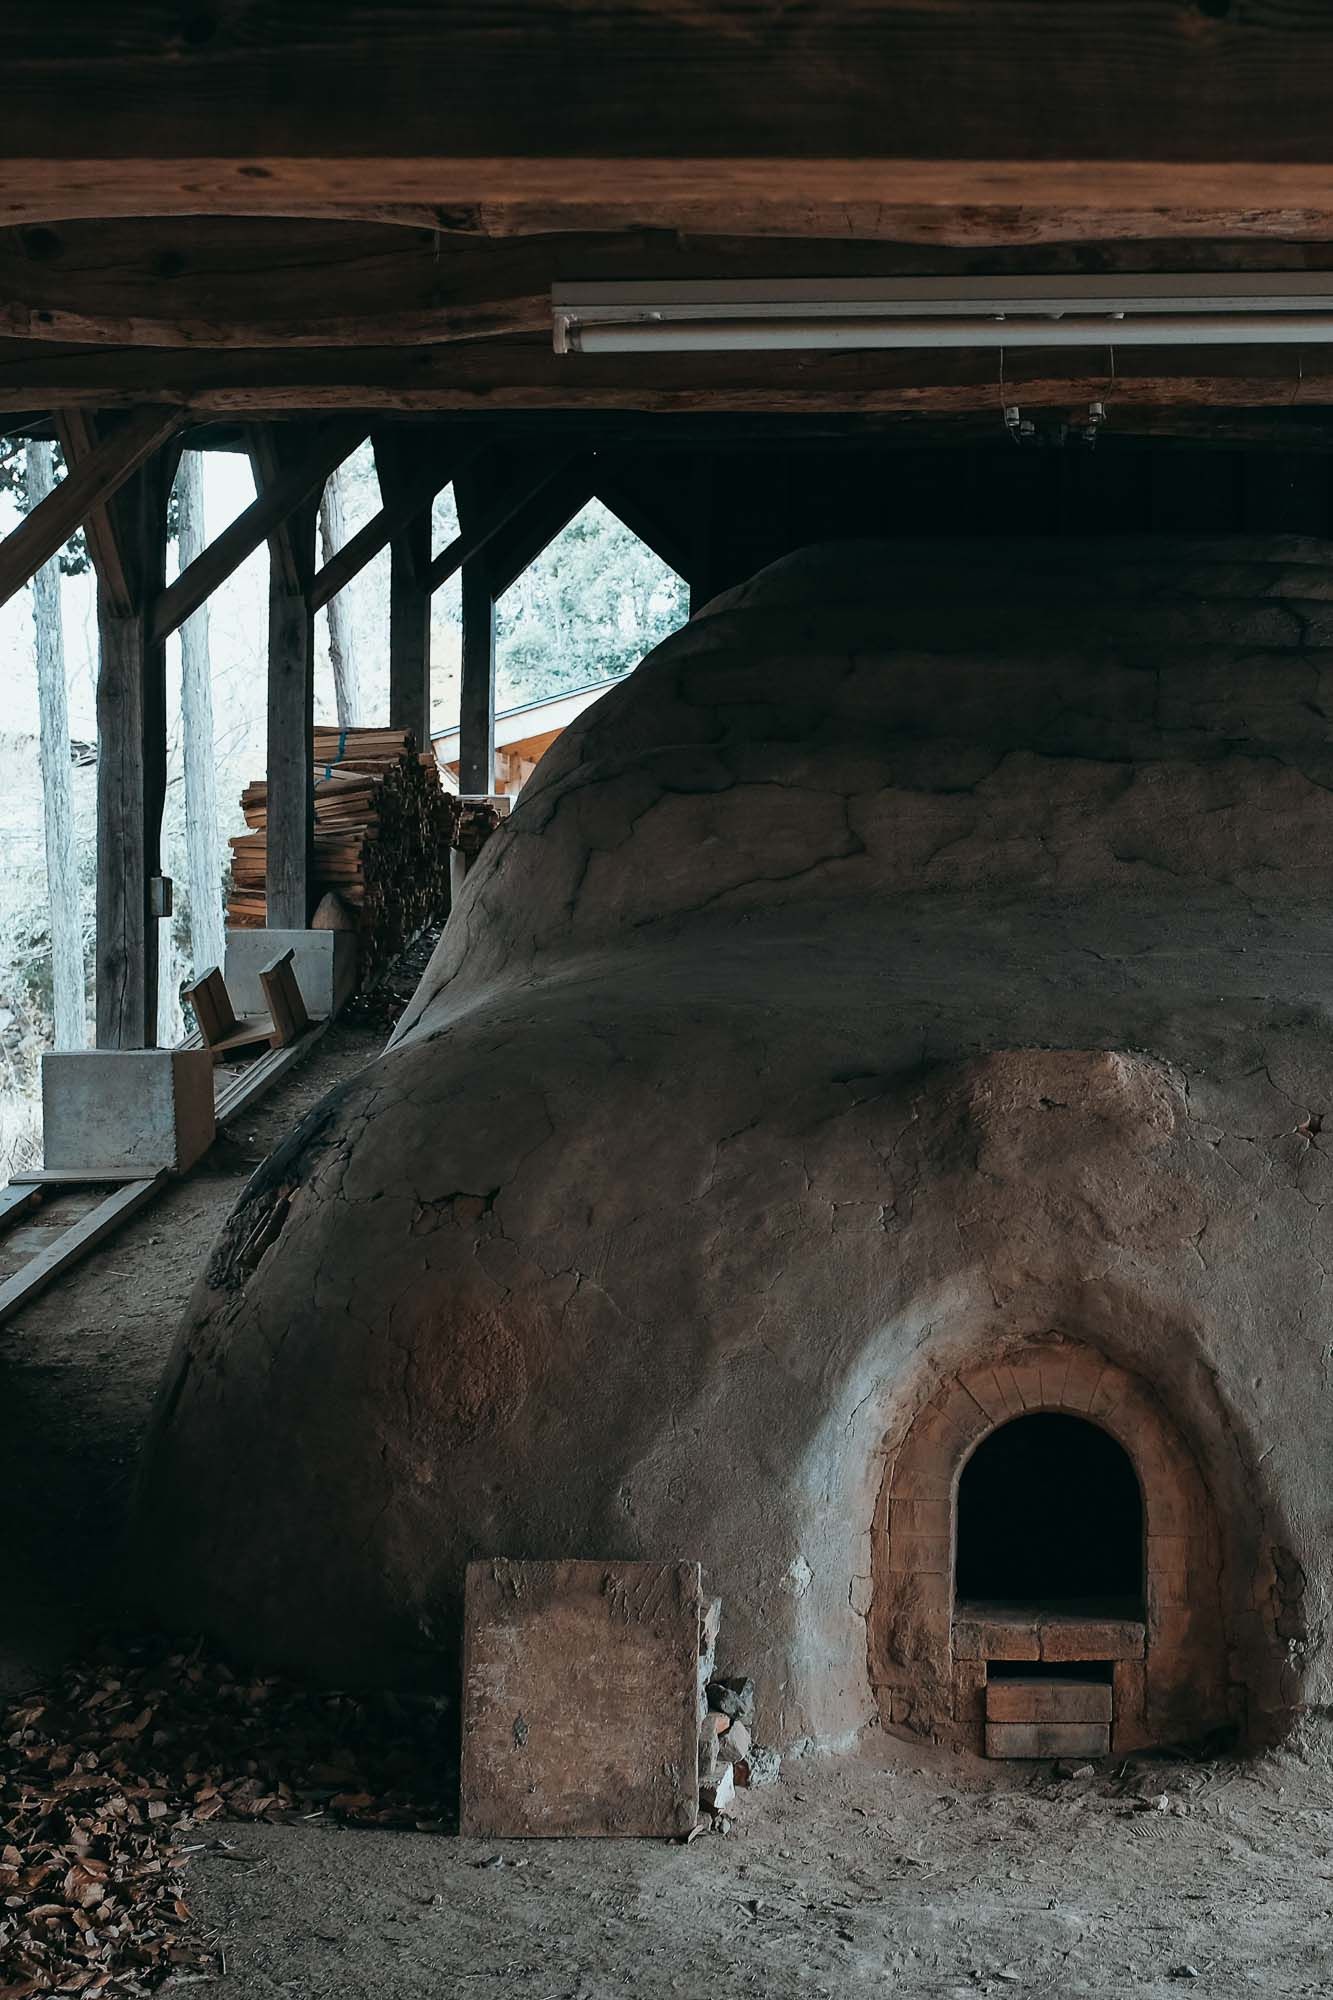 Hamada's personal climbing kiln, an ancient type of wood-fired kiln, often used for stonewares and porcelains.